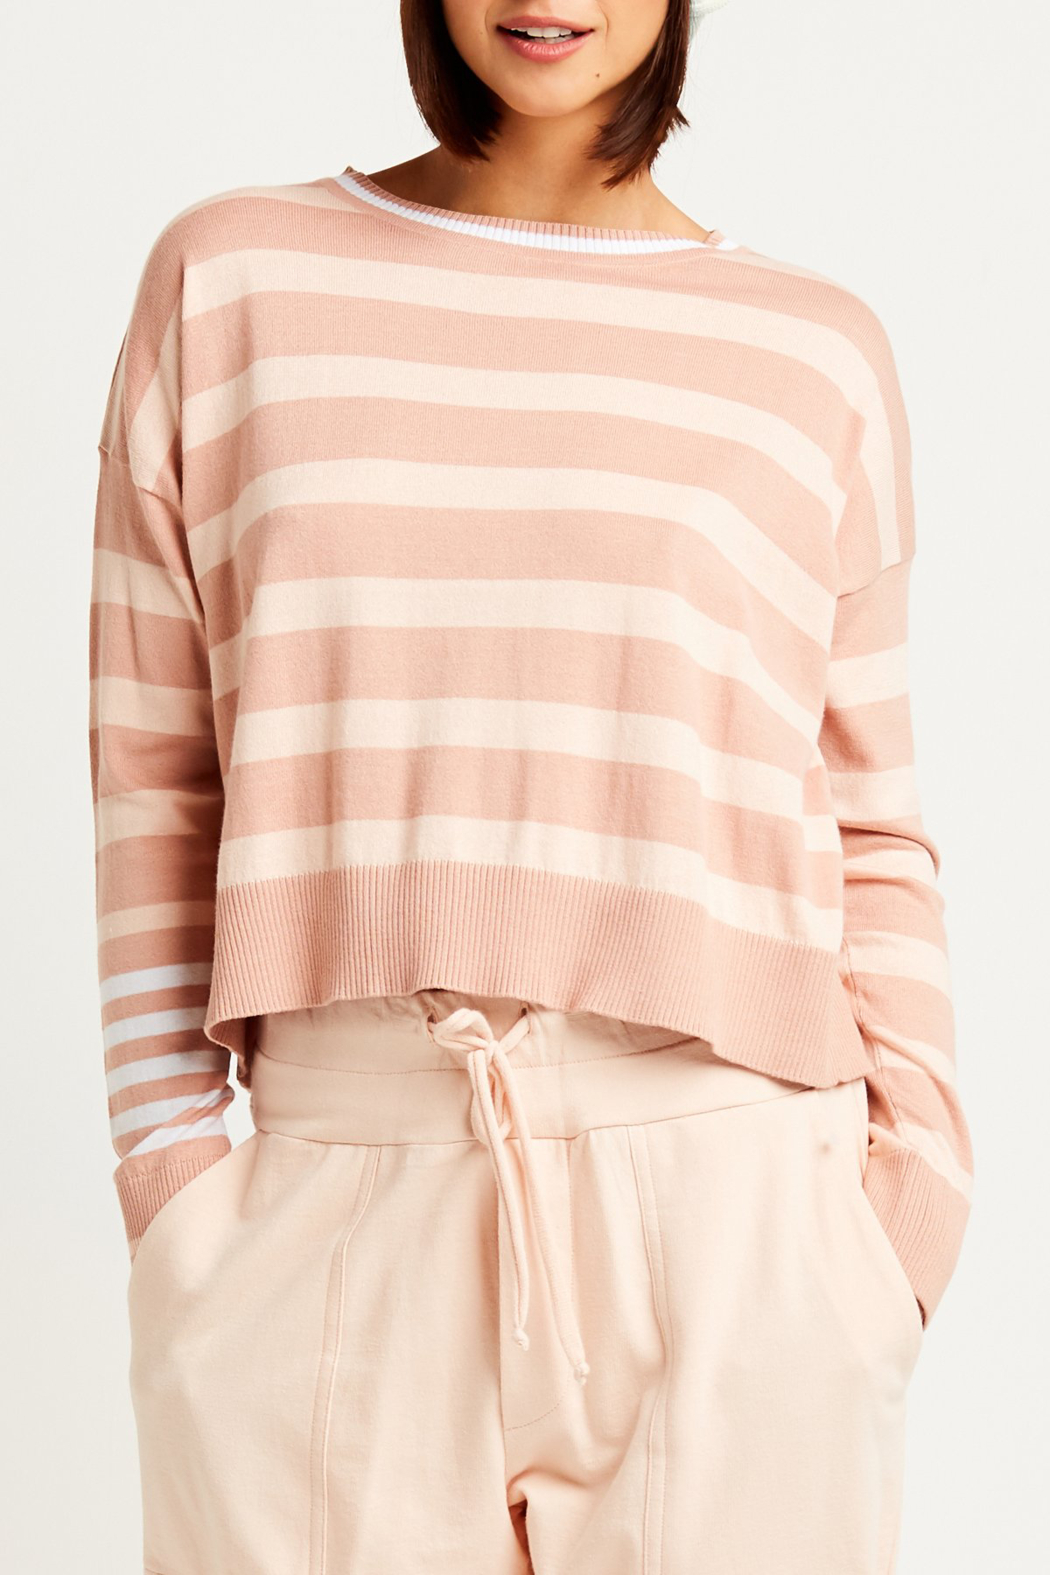 Planet Pima Cotton Classic Stripe Crew Sweater - Main Image